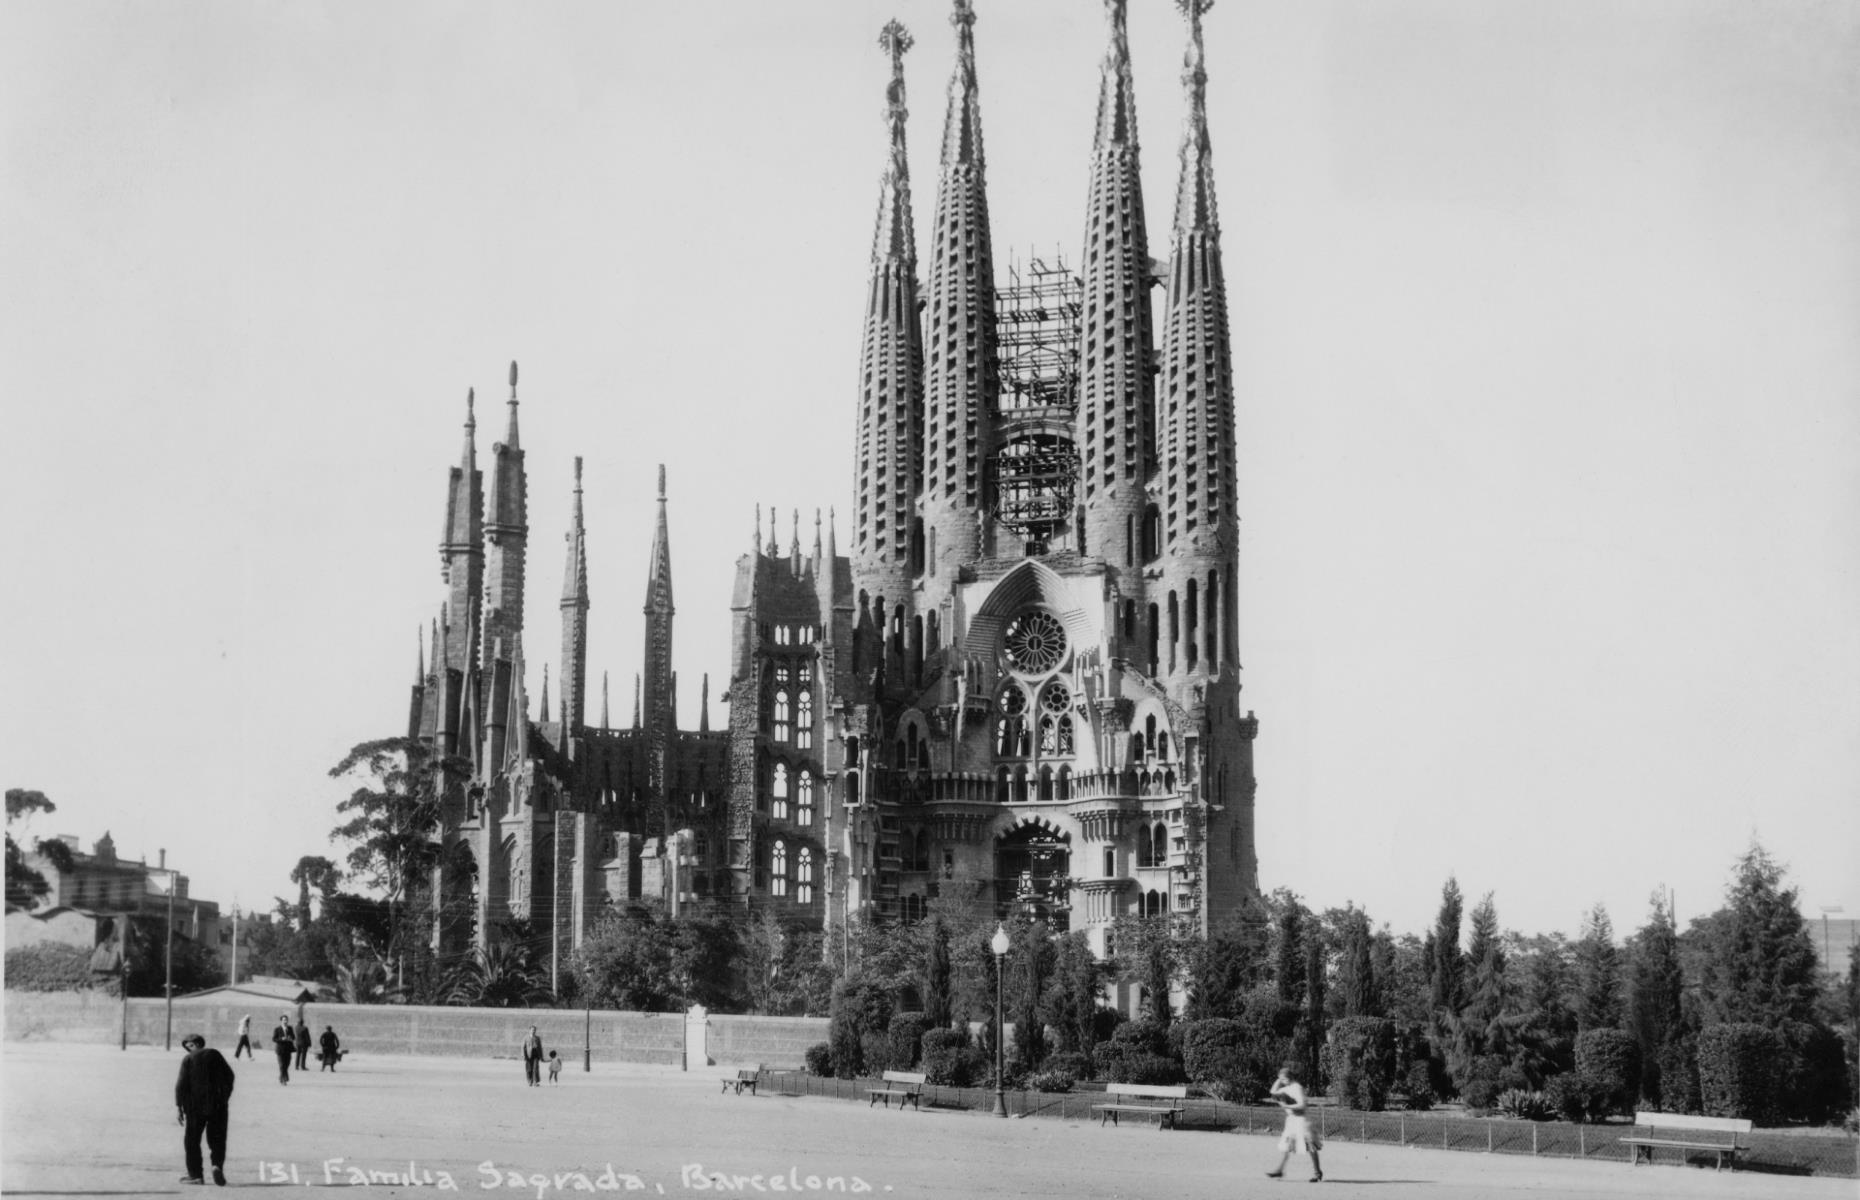 Slide 30 of 51: Designed by the renowned architect Antoni Gaudí, the Sagrada Família cathedral in the heart of Barcelona is an architectural feat of epic proportions. Construction began in 1882, yet by 1926, the time of Gaudí's death, only a quarter of it was completed. Building works halted due to the Spanish Civil War (1936-1939) and started again in the 1950s. Even today, it's still not finished, although the current team of architects claim it will be completed by 2026. The epic Neo-classical cathedral is pictured here in the 1940s. See more of the world's most amazing unfinished landmarks here.